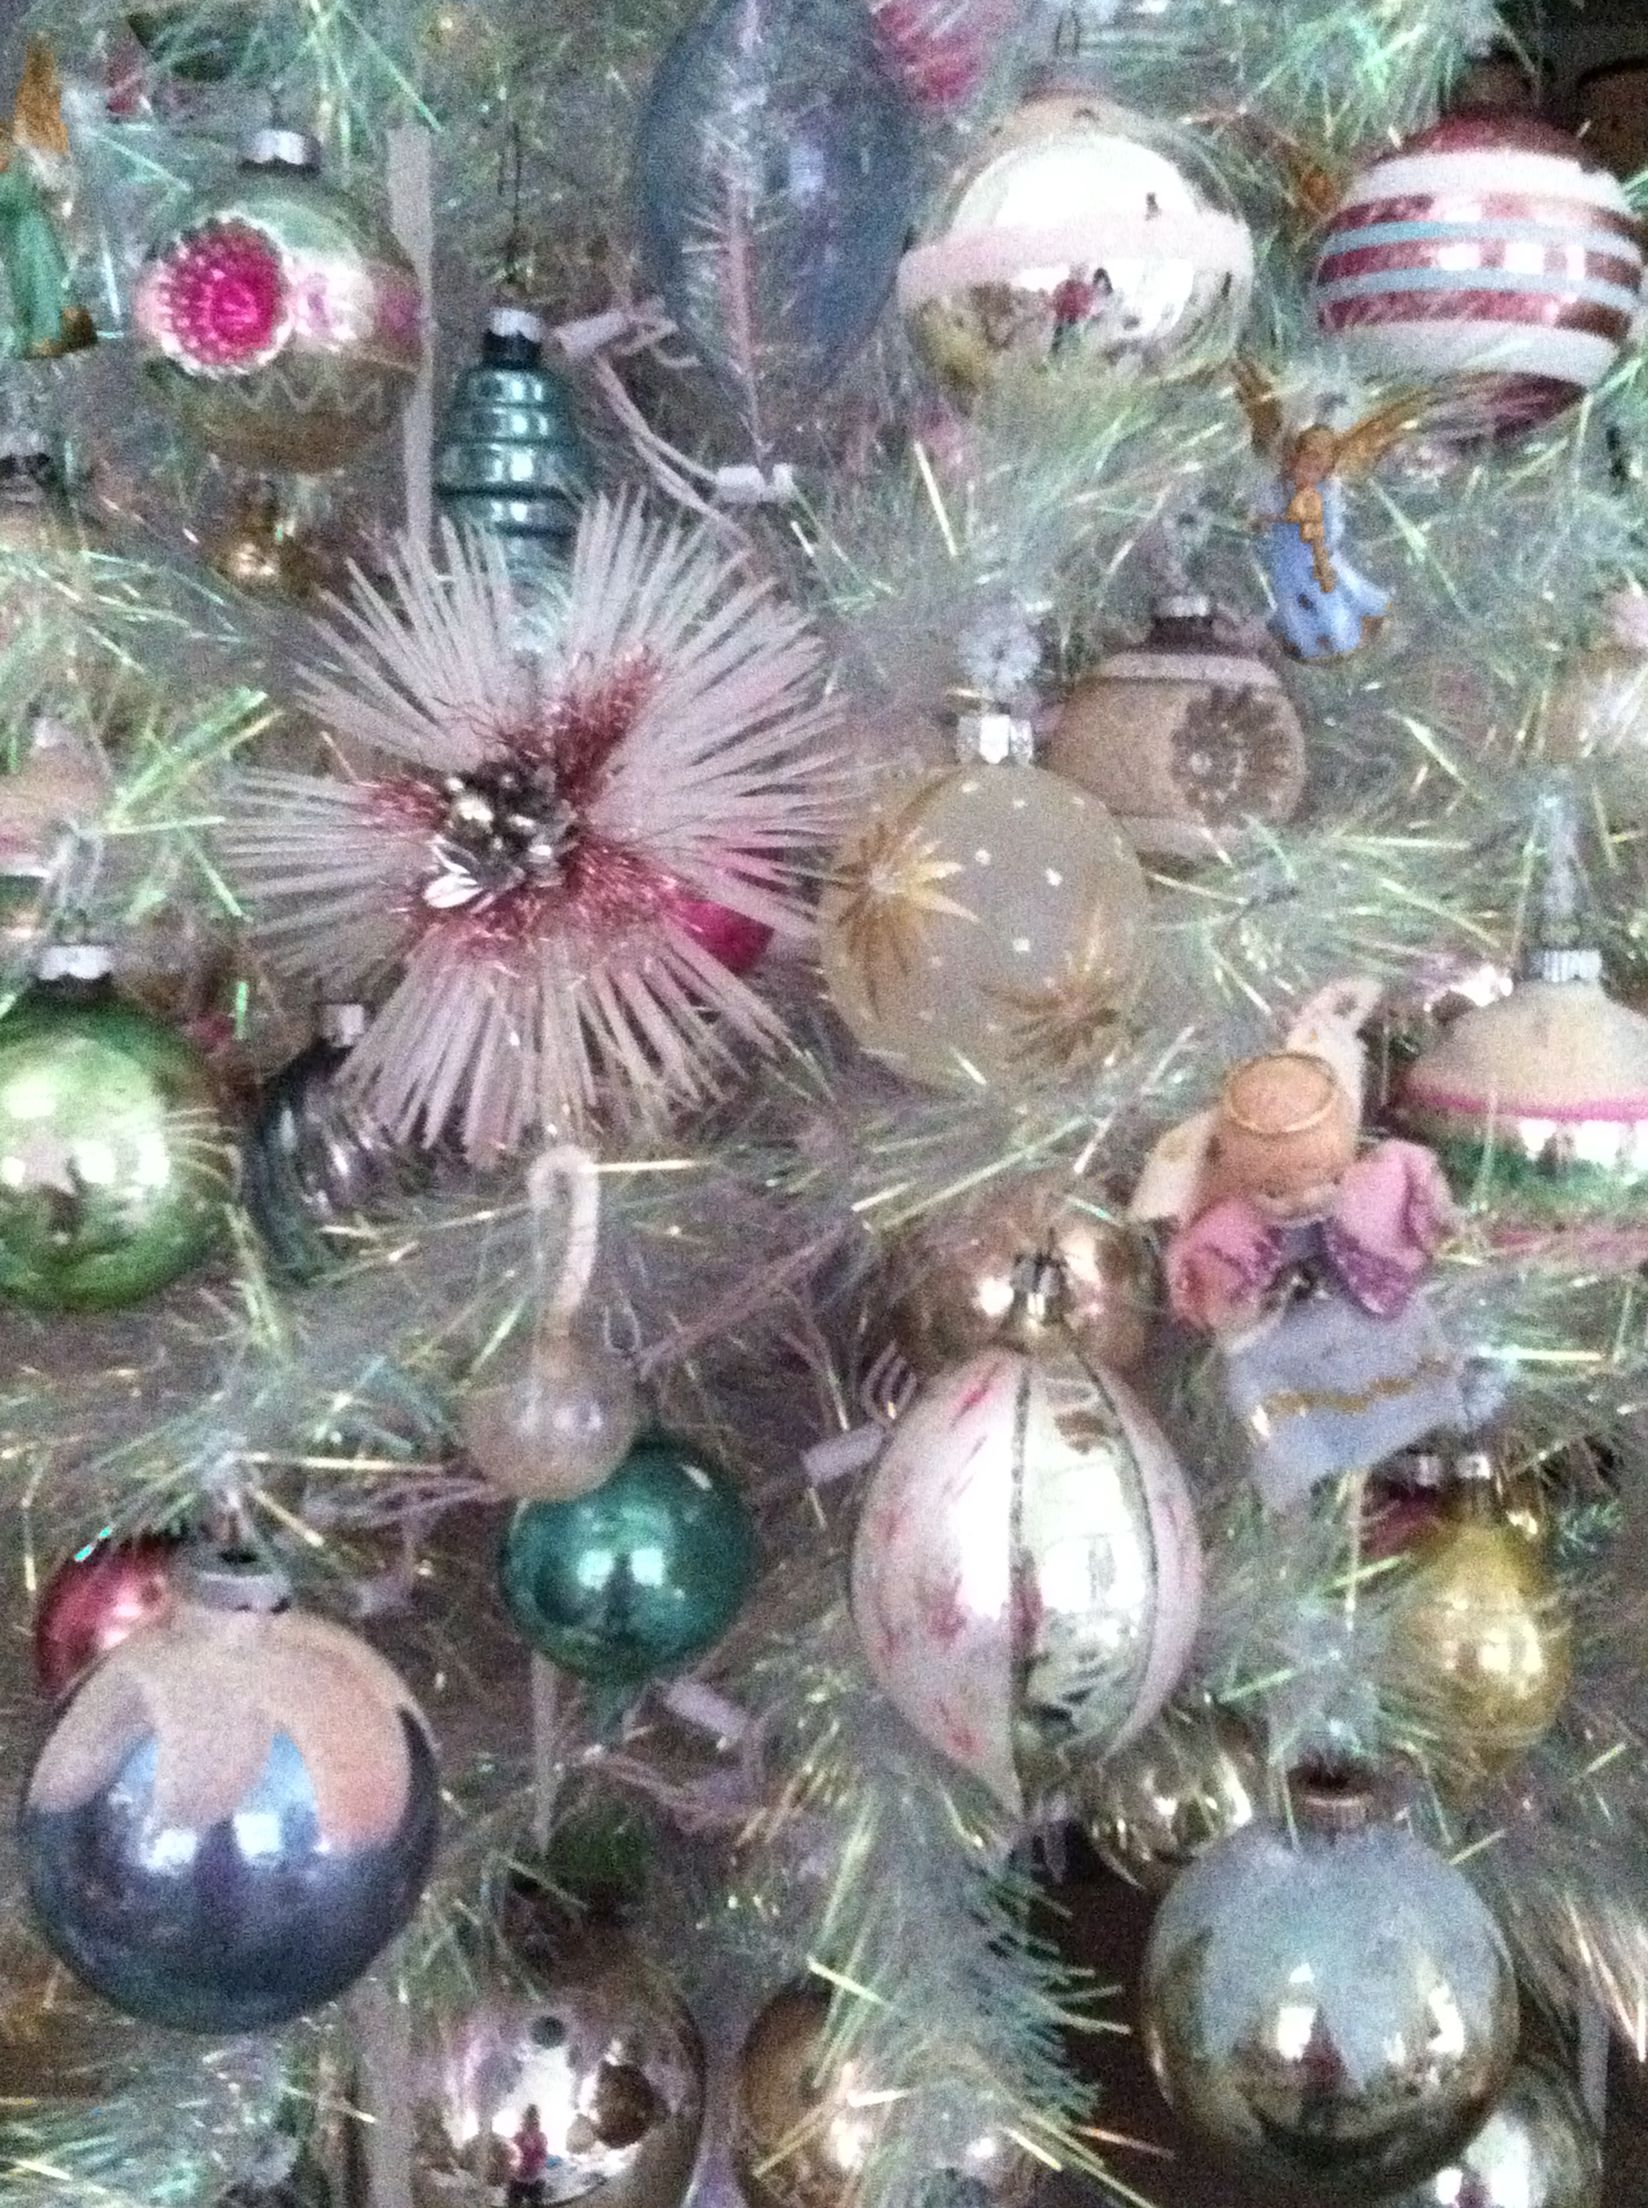 Mostly Vintage Ornaments On My Iridescent Tree Christmas Hanging Decorations Vintage Christmas Ornaments Christmas Spirit